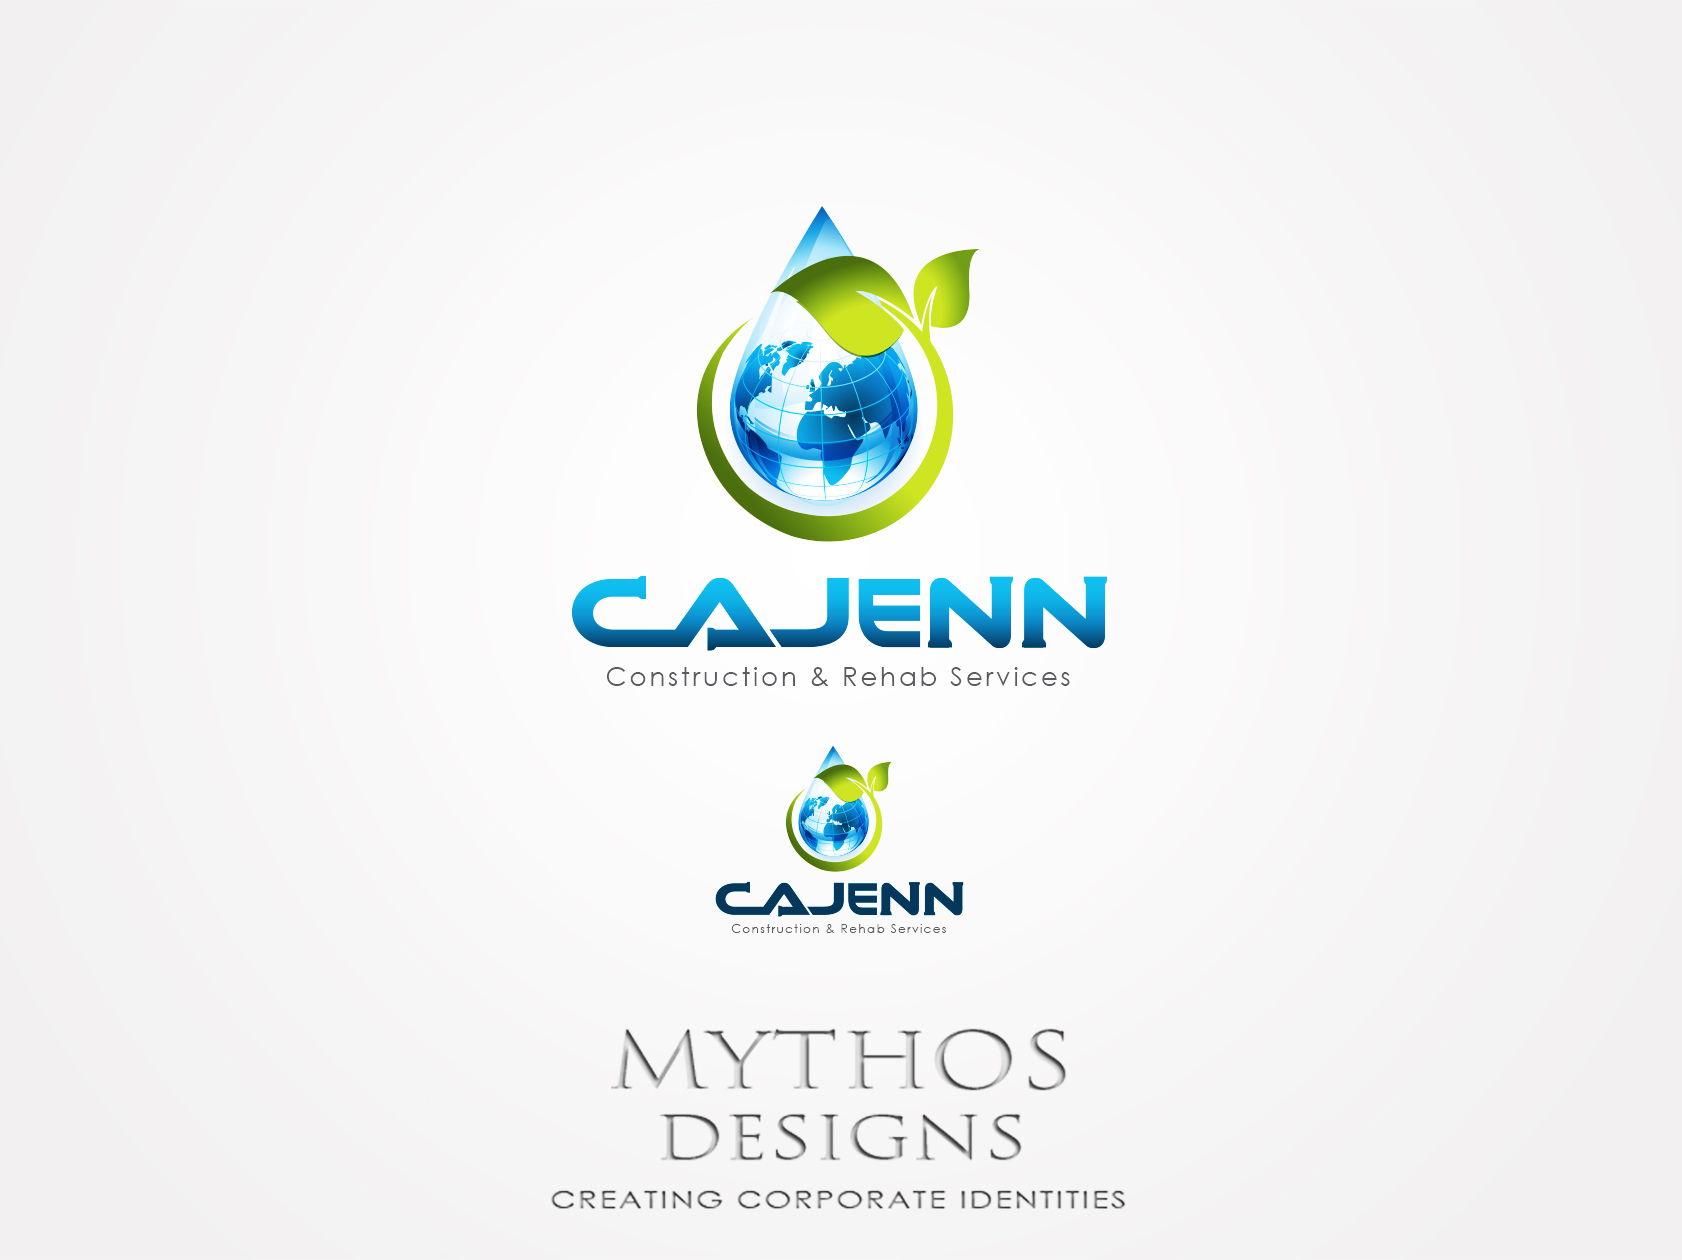 Logo Design by Mythos Designs - Entry No. 148 in the Logo Design Contest New Logo Design for CaJenn Construction & Rehab Services.